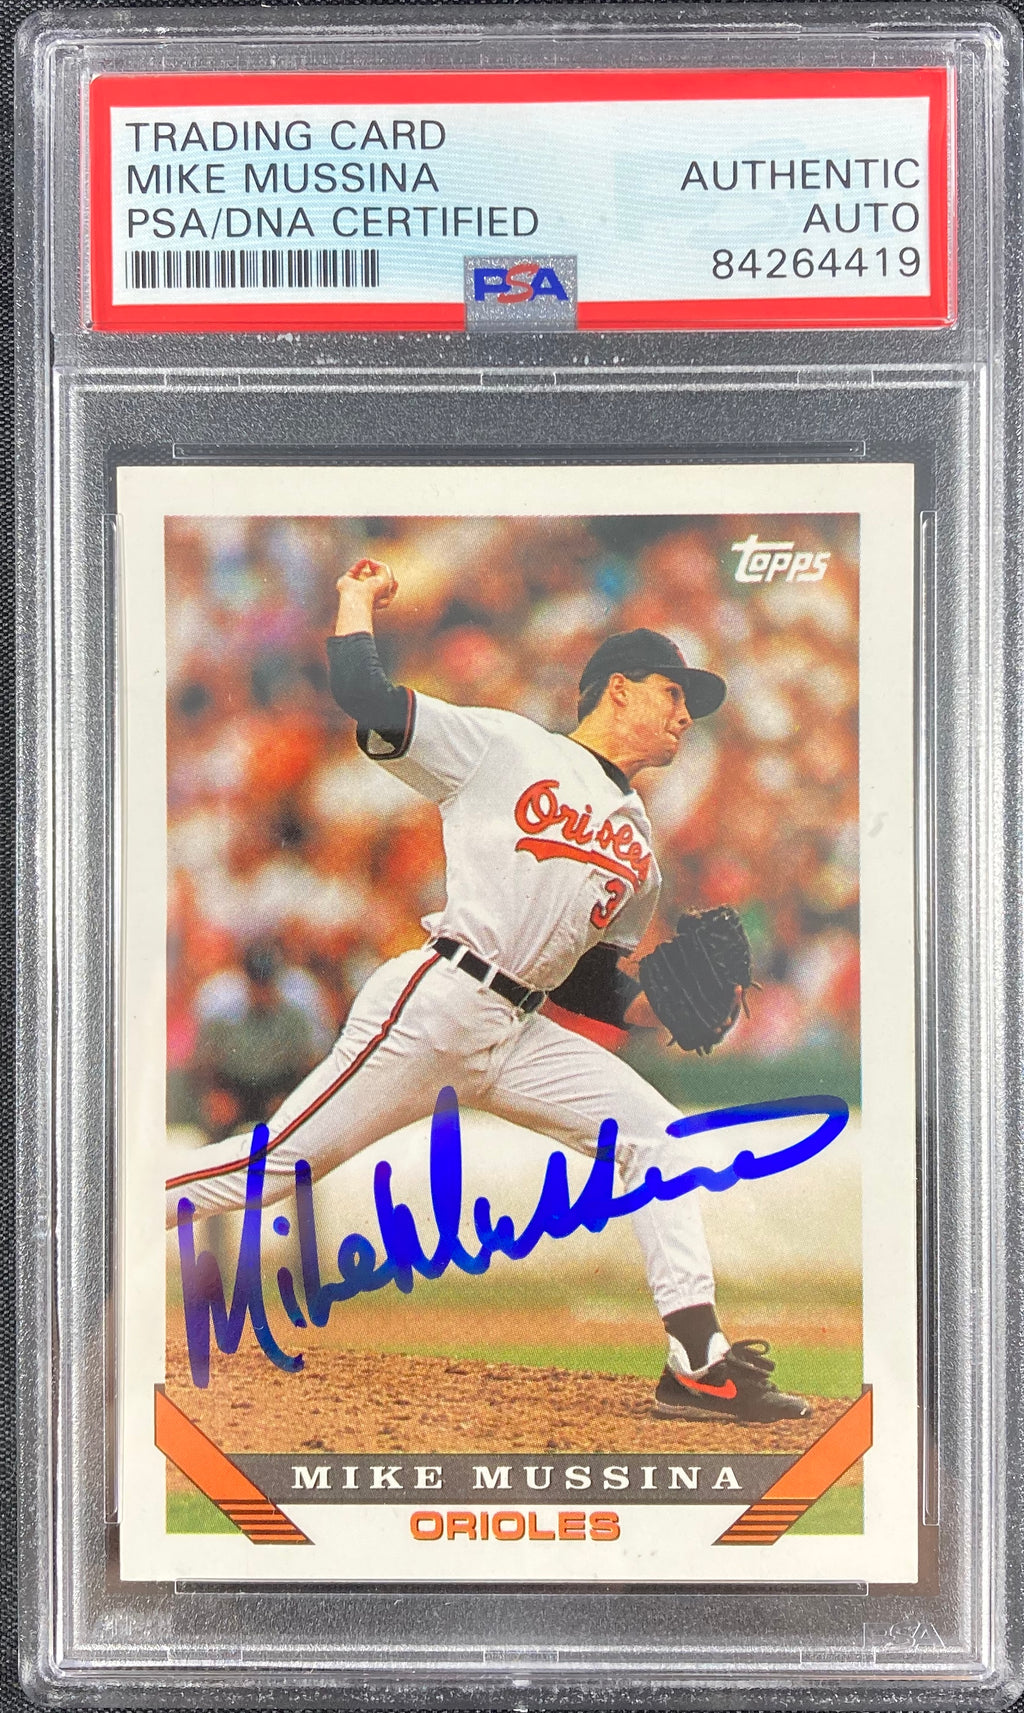 Mike Mussina auto card 1993 Topps #710 Baltimore Orioles PSA Encapsulated - JAG Sports Marketing